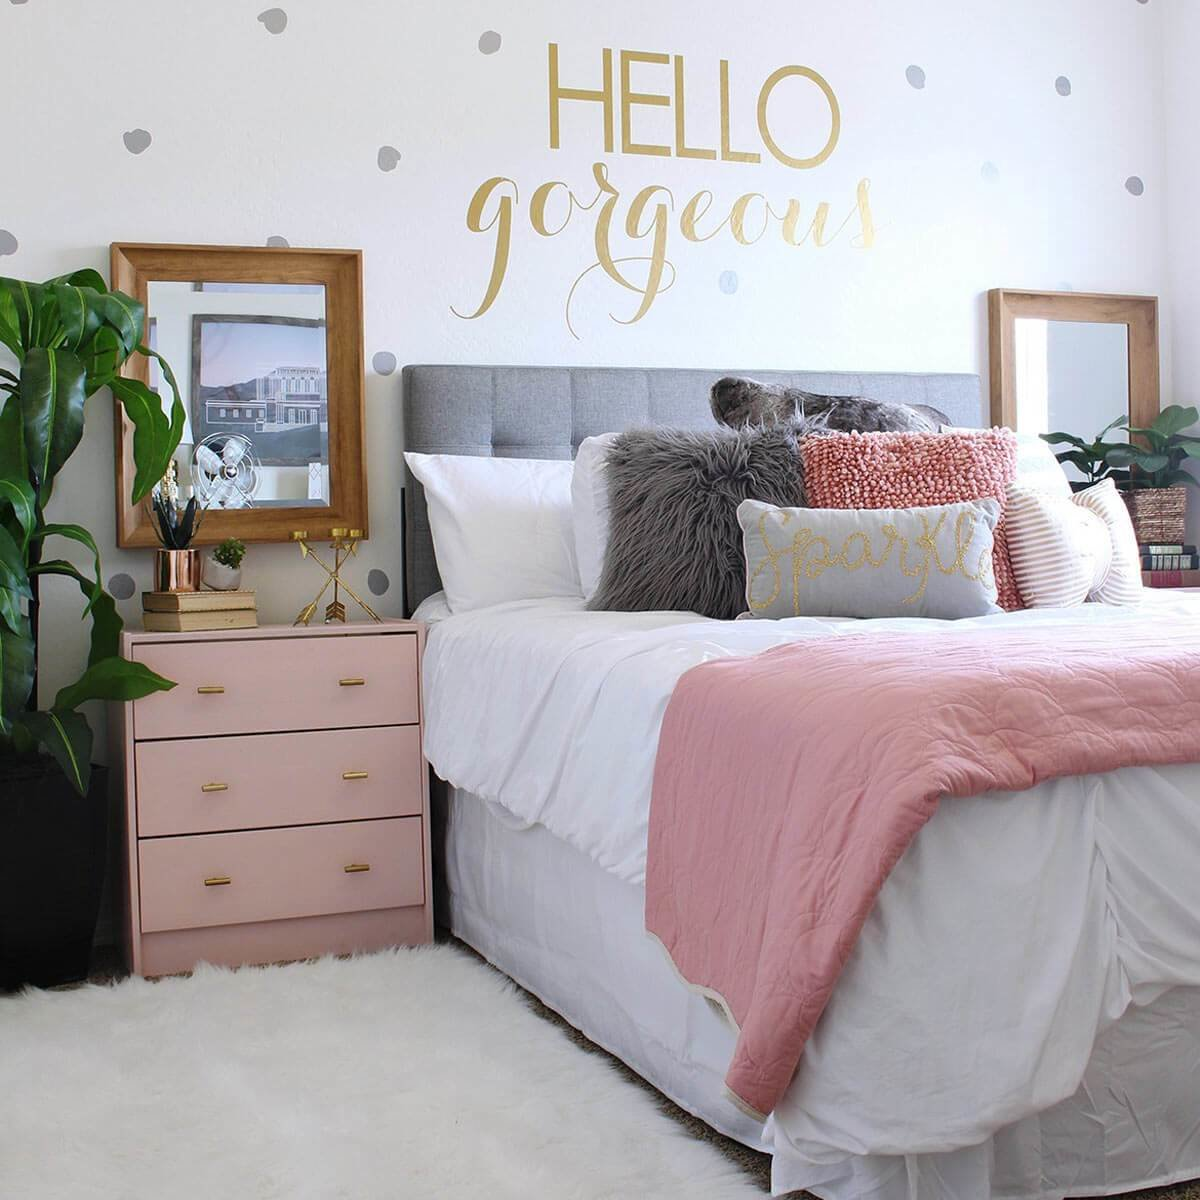 Best 12 Fresh Ideas For T**N Bedrooms — The Family Handyman With Pictures